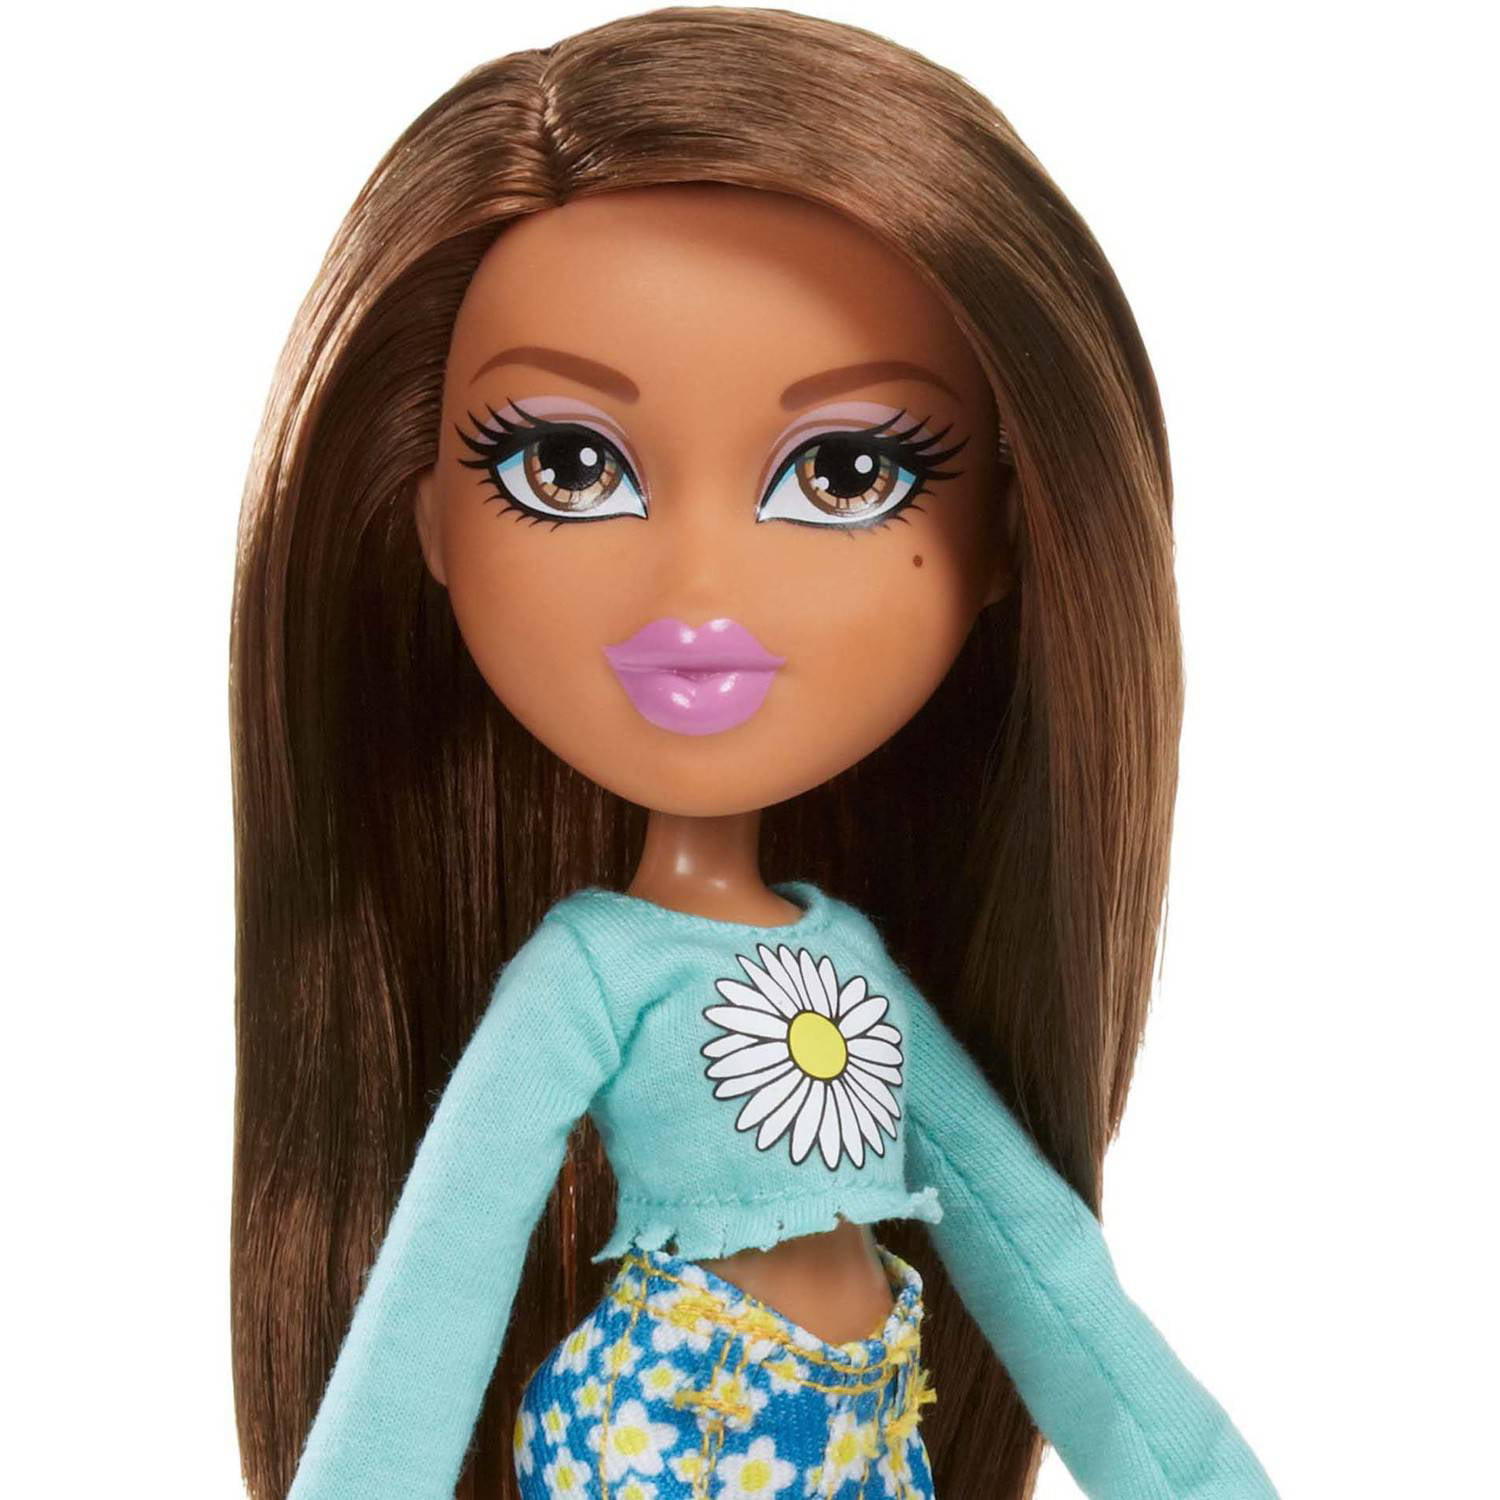 Dress up yasmin bratz doll pictures